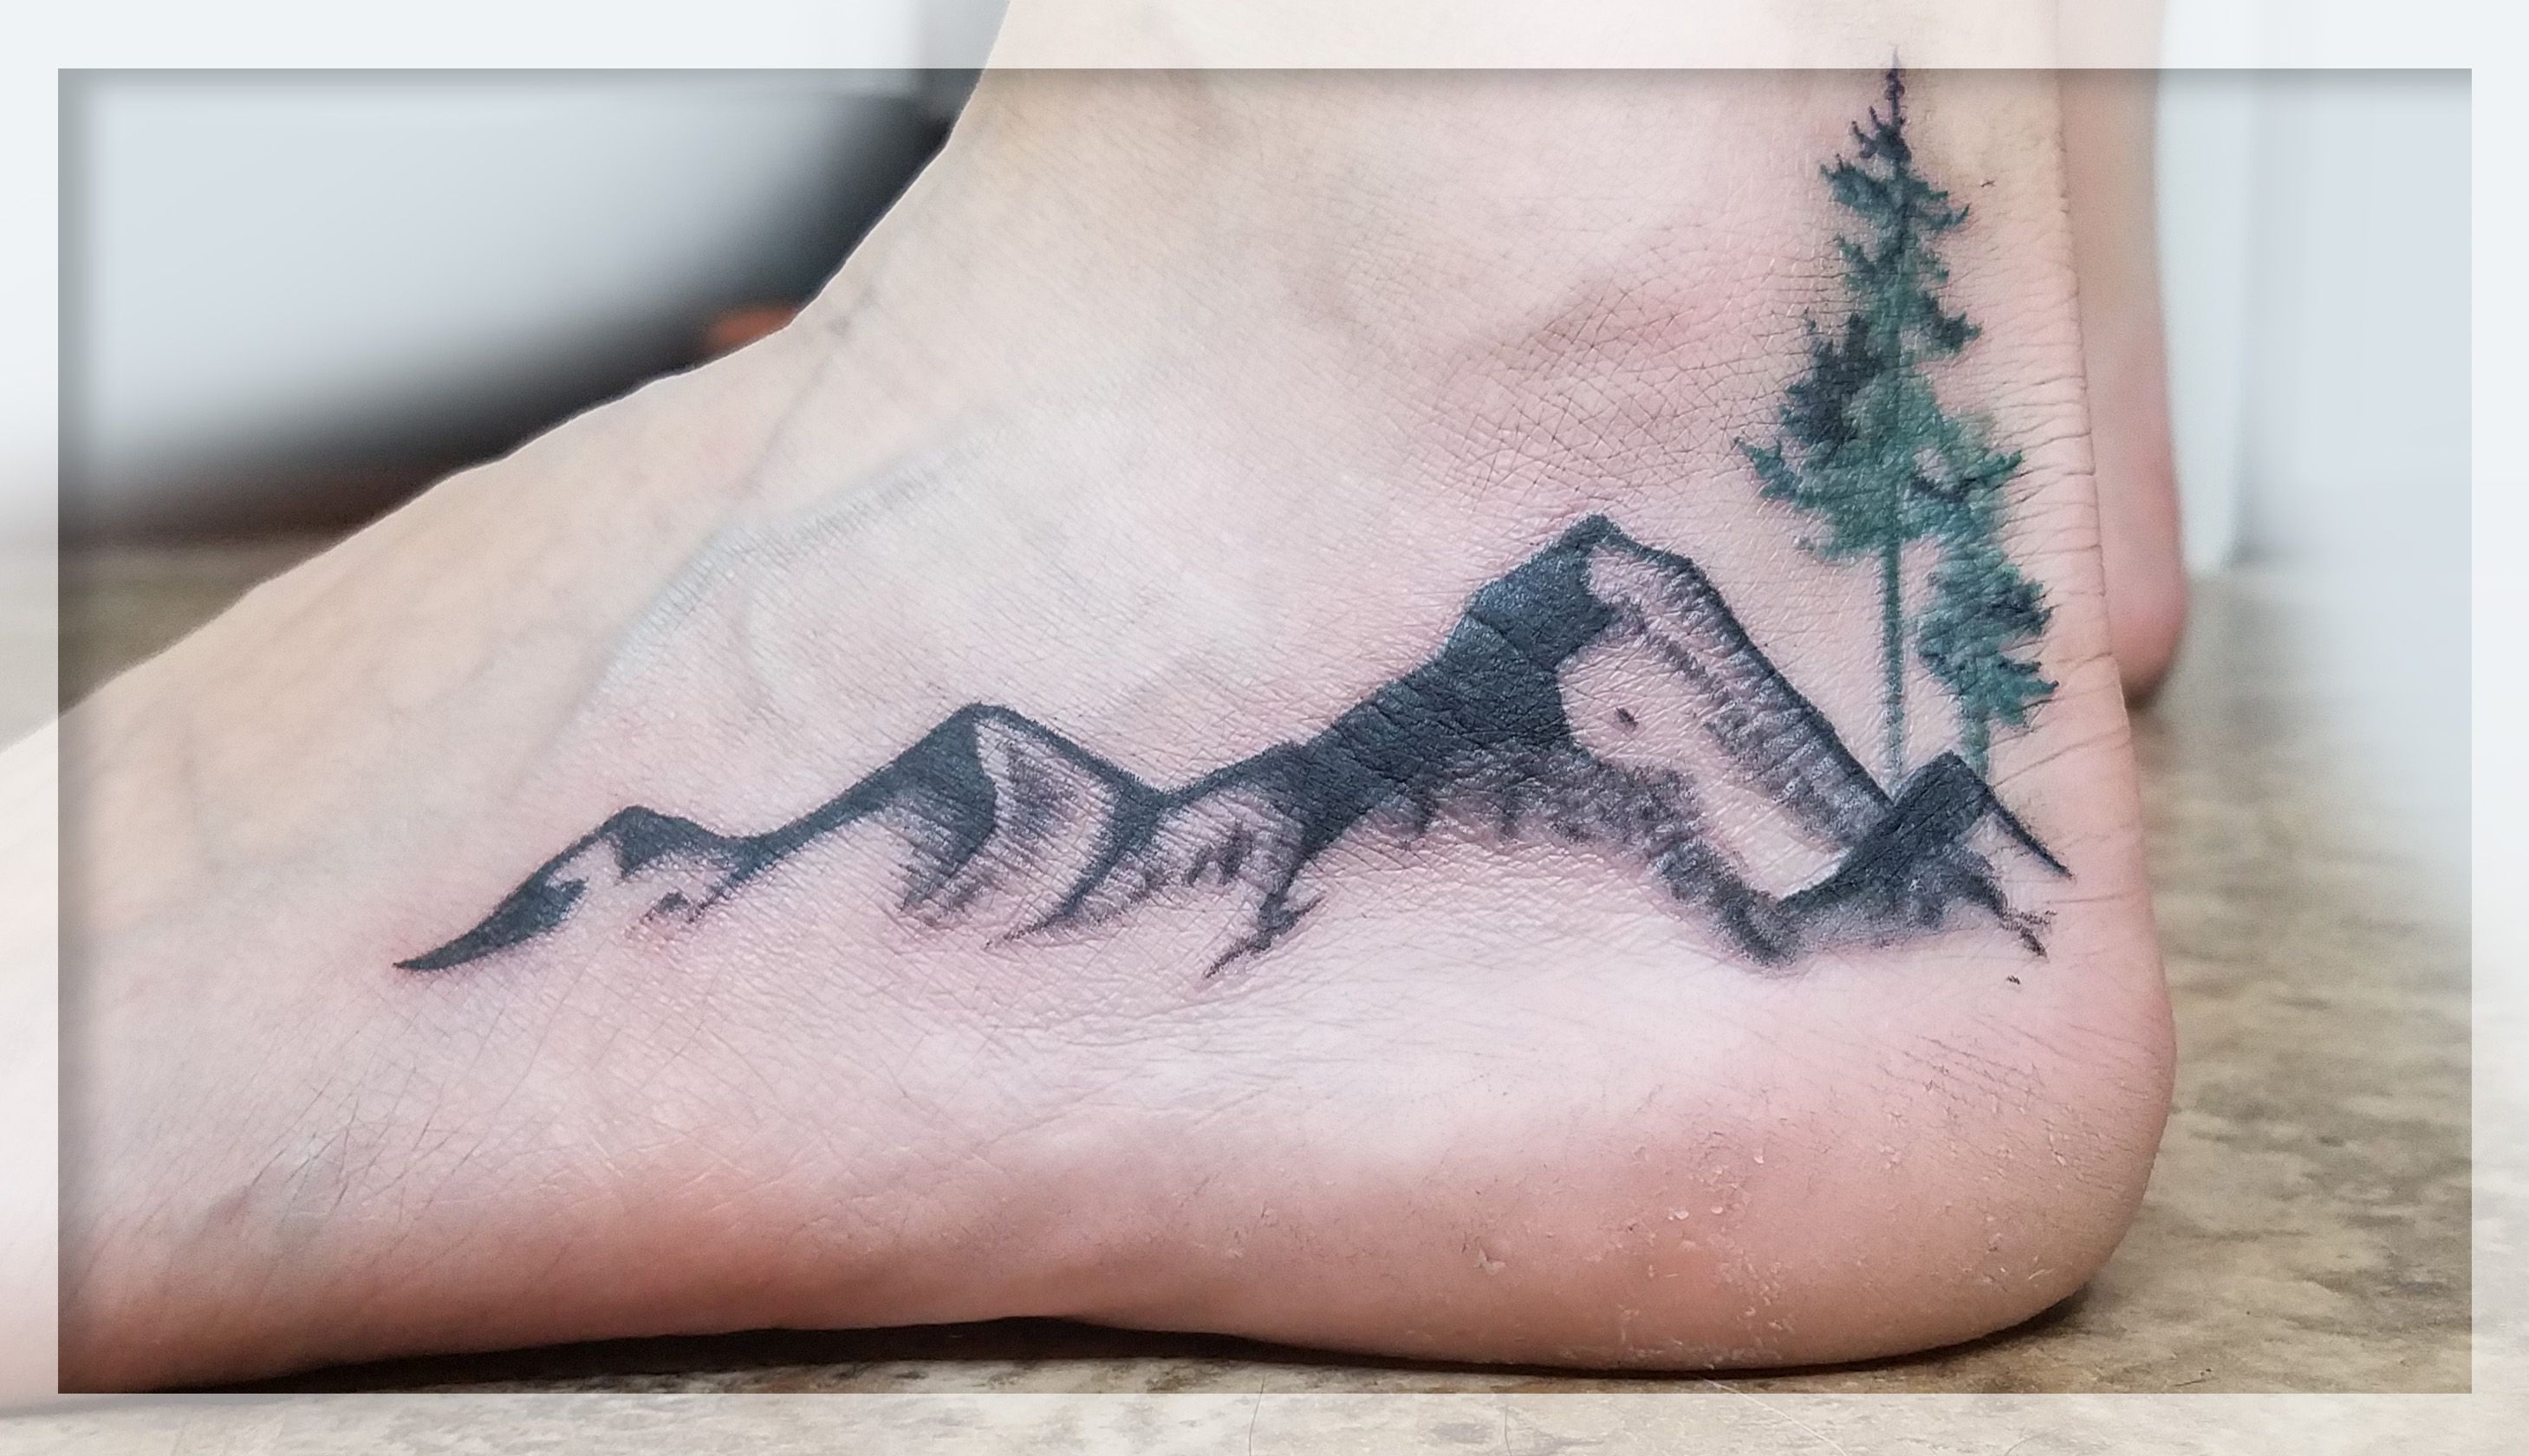 My Mountain And Tree Tattoo So I Will Always Be Walking In The Mountains Left Foot Tattoos Pinterest